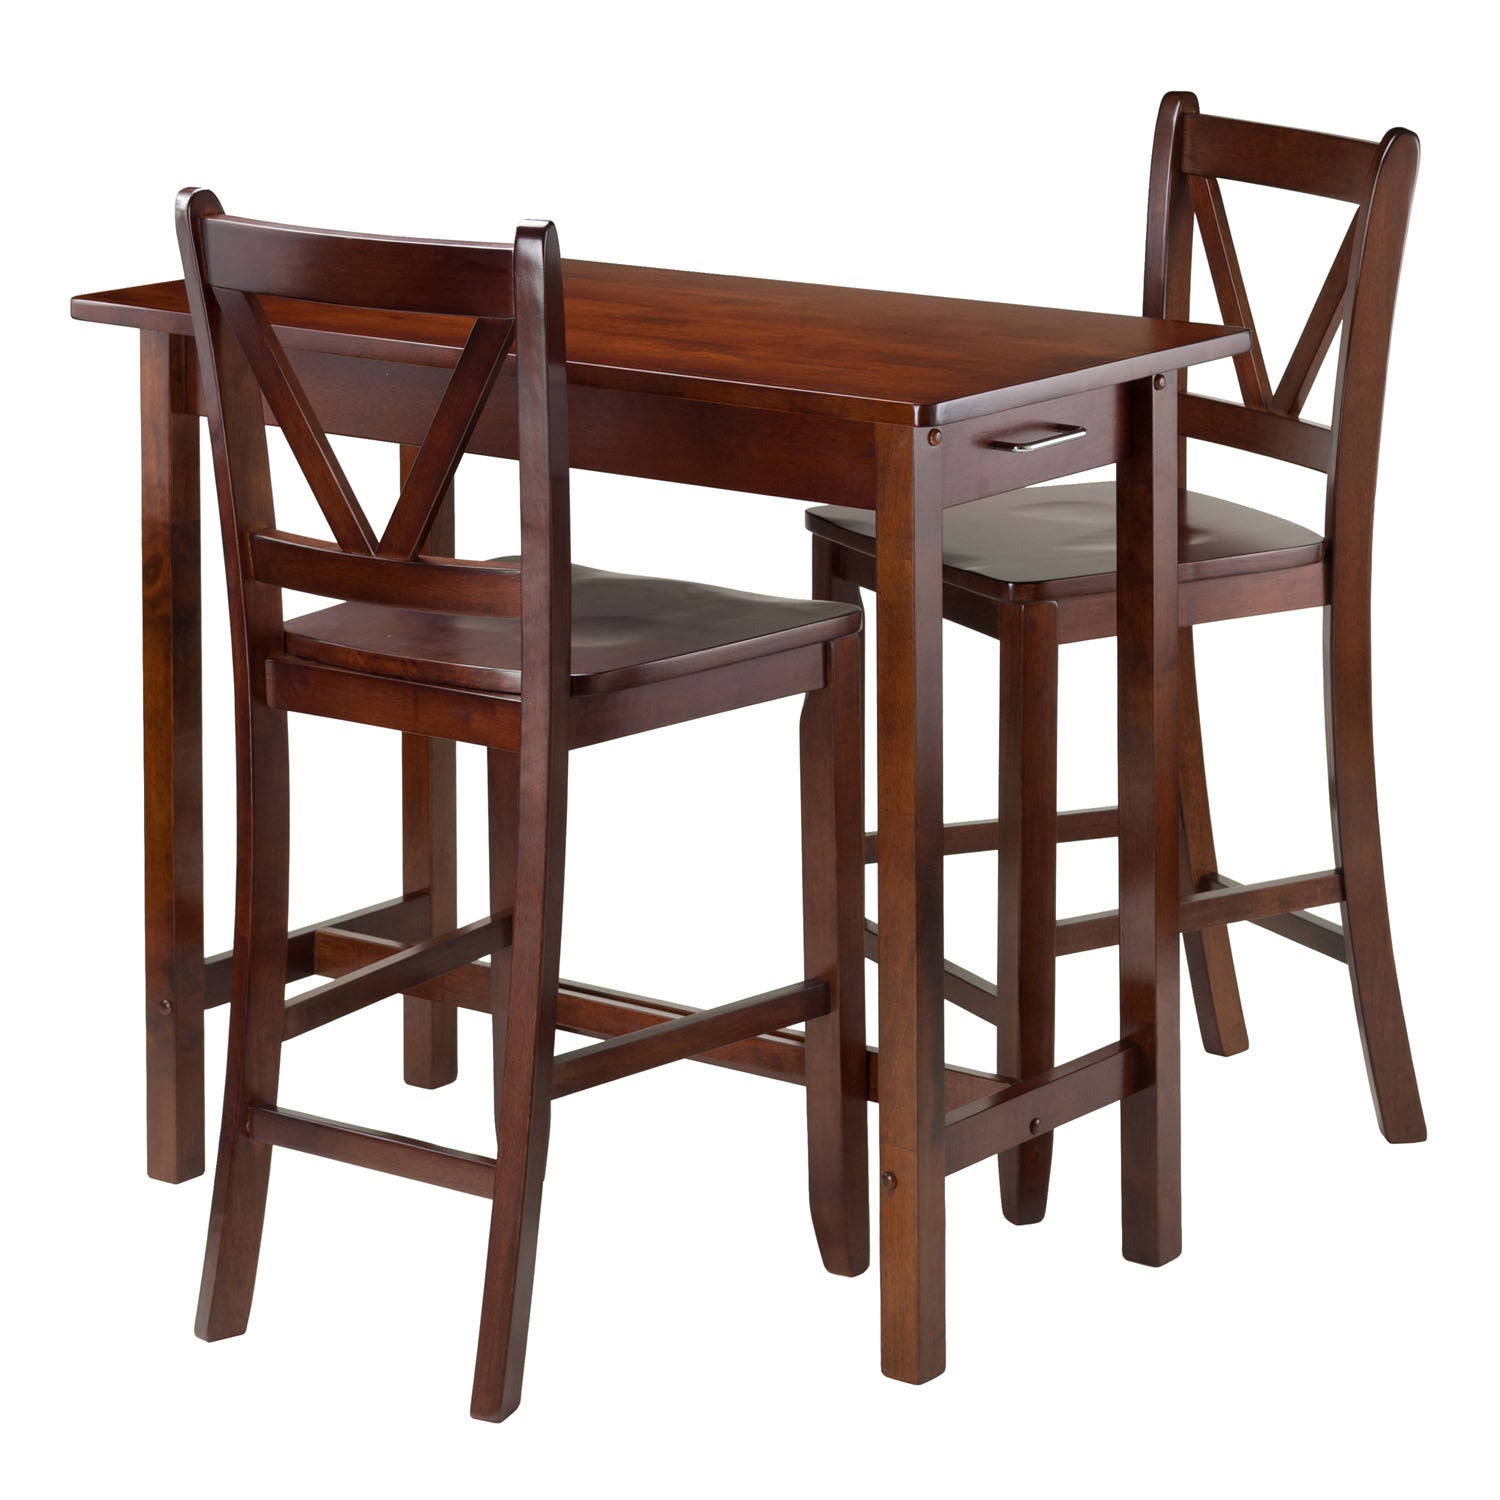 Winsome 3 Piece Island Kitchen Table With 2 V Back Counter Stools For Newest Winsome 3 Piece Counter Height Dining Sets (View 7 of 20)